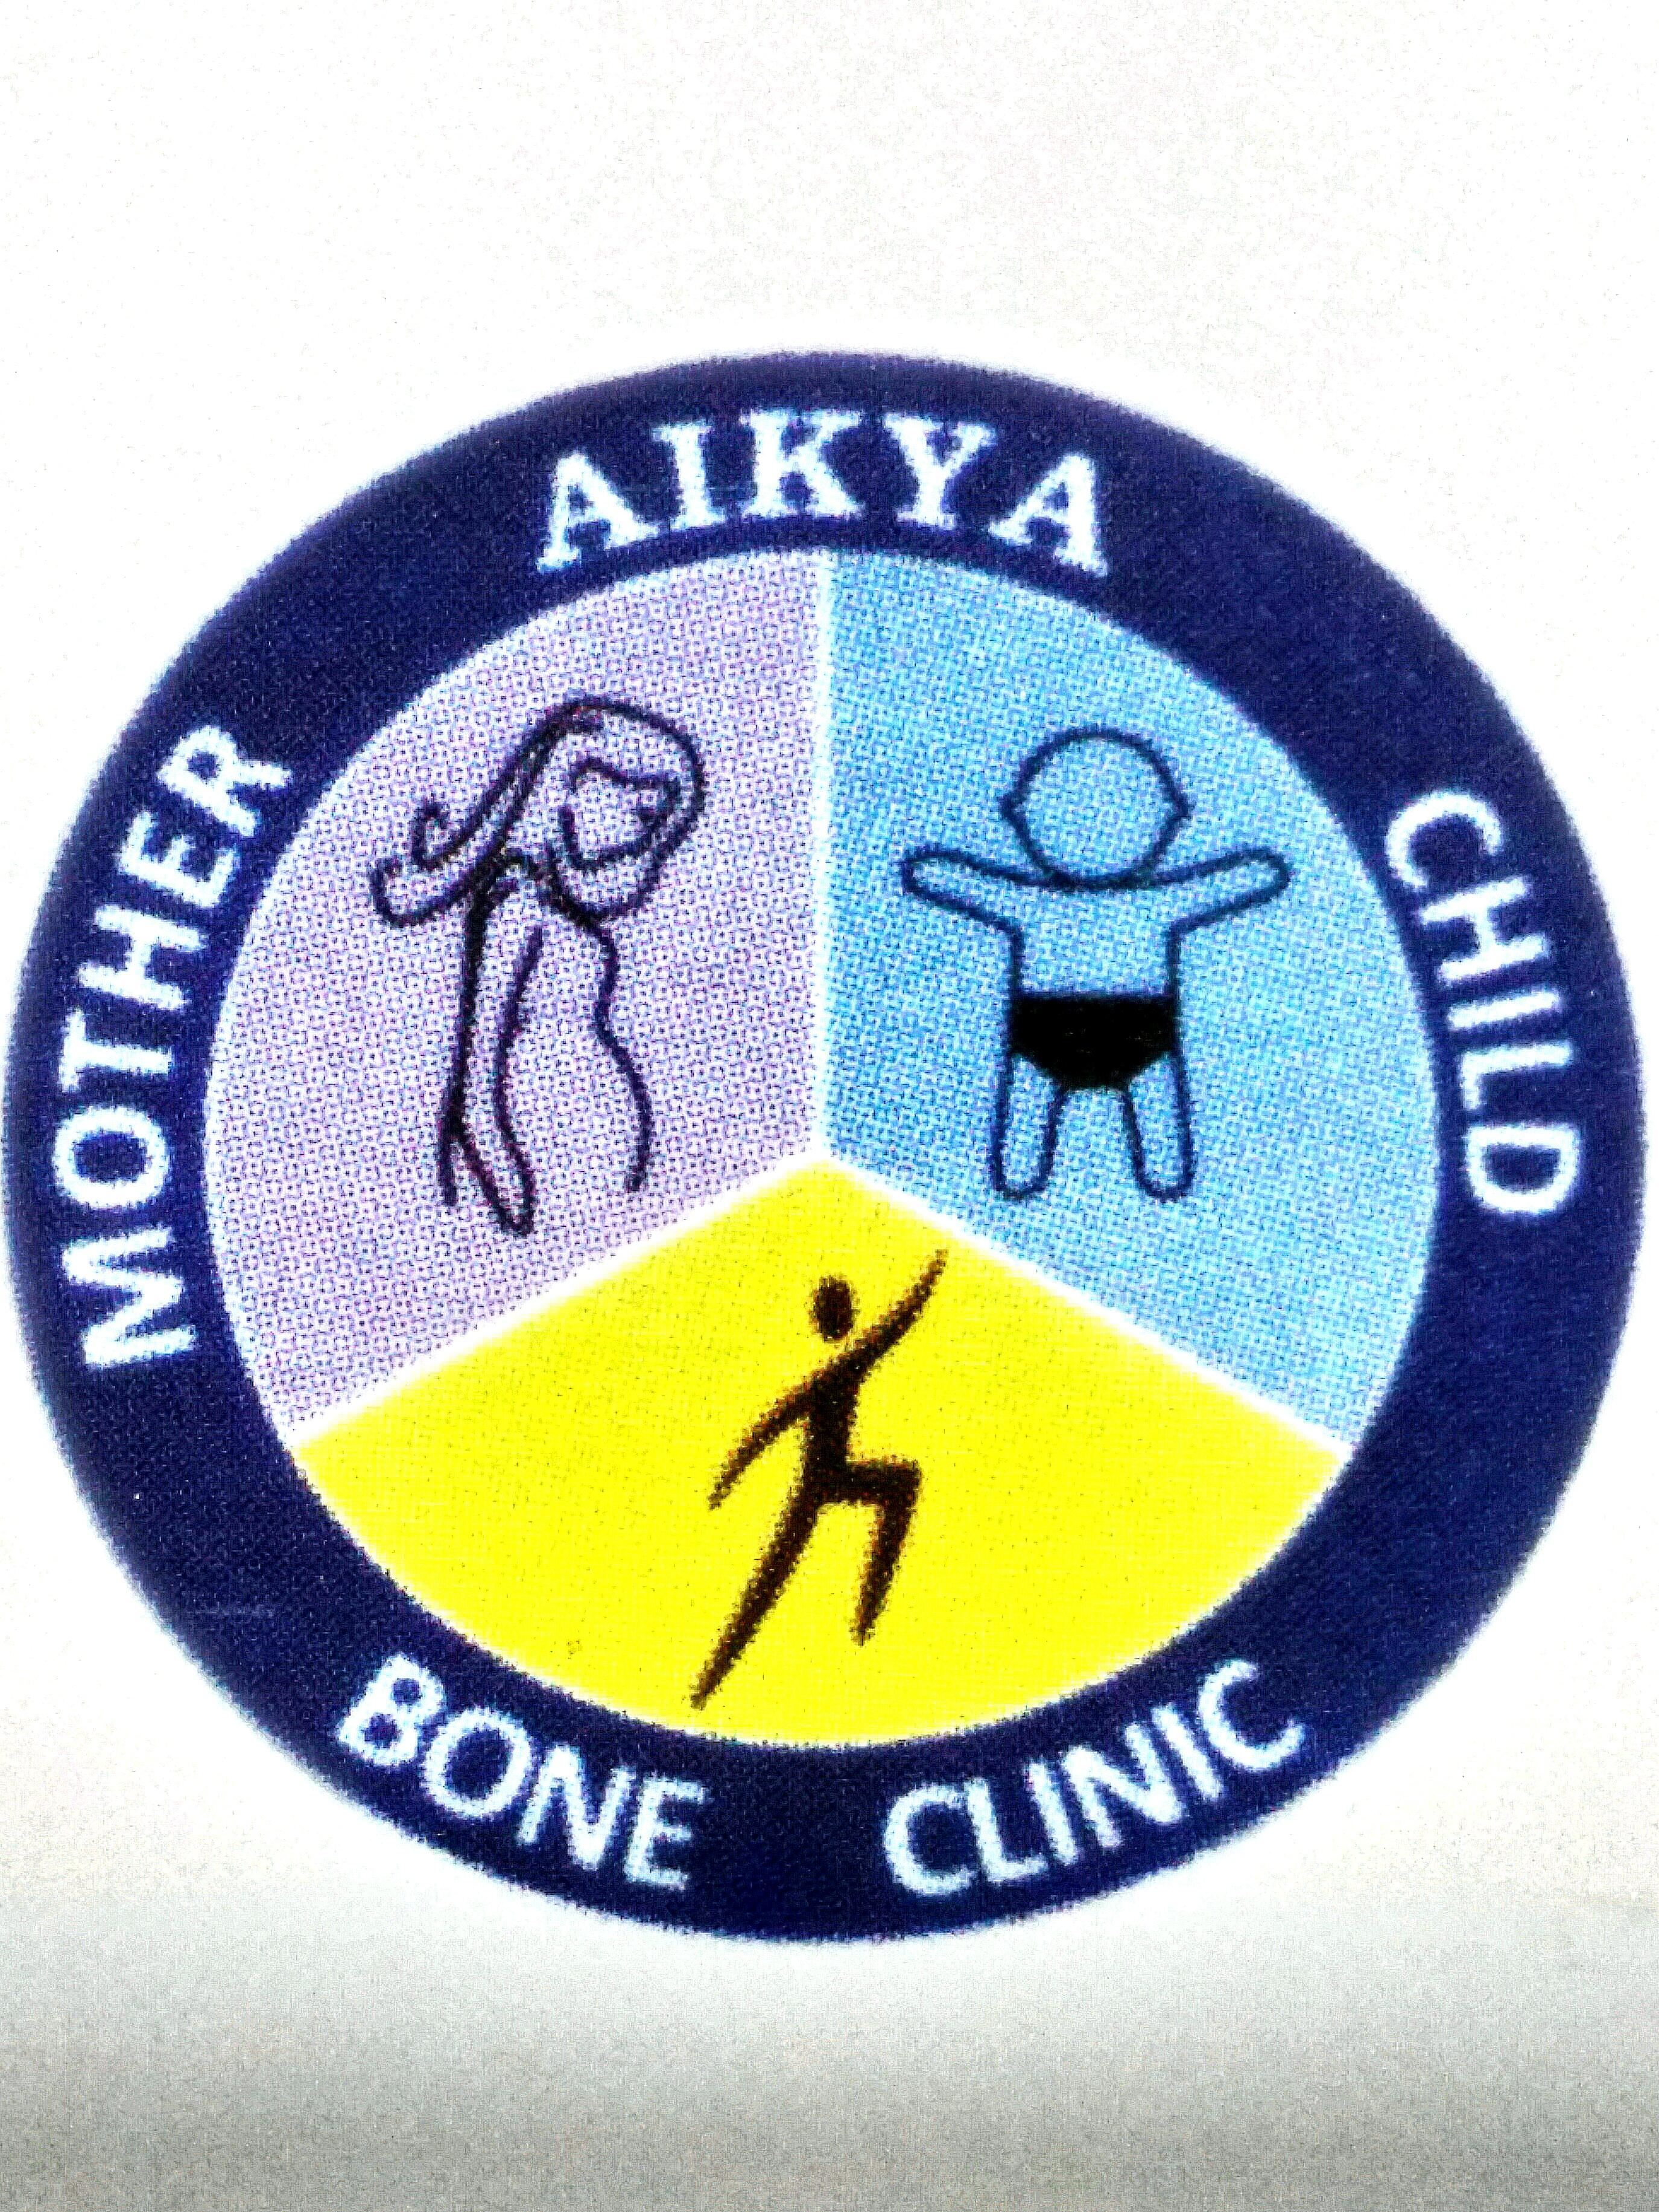 Aikya Mother Child & Bone Clinic